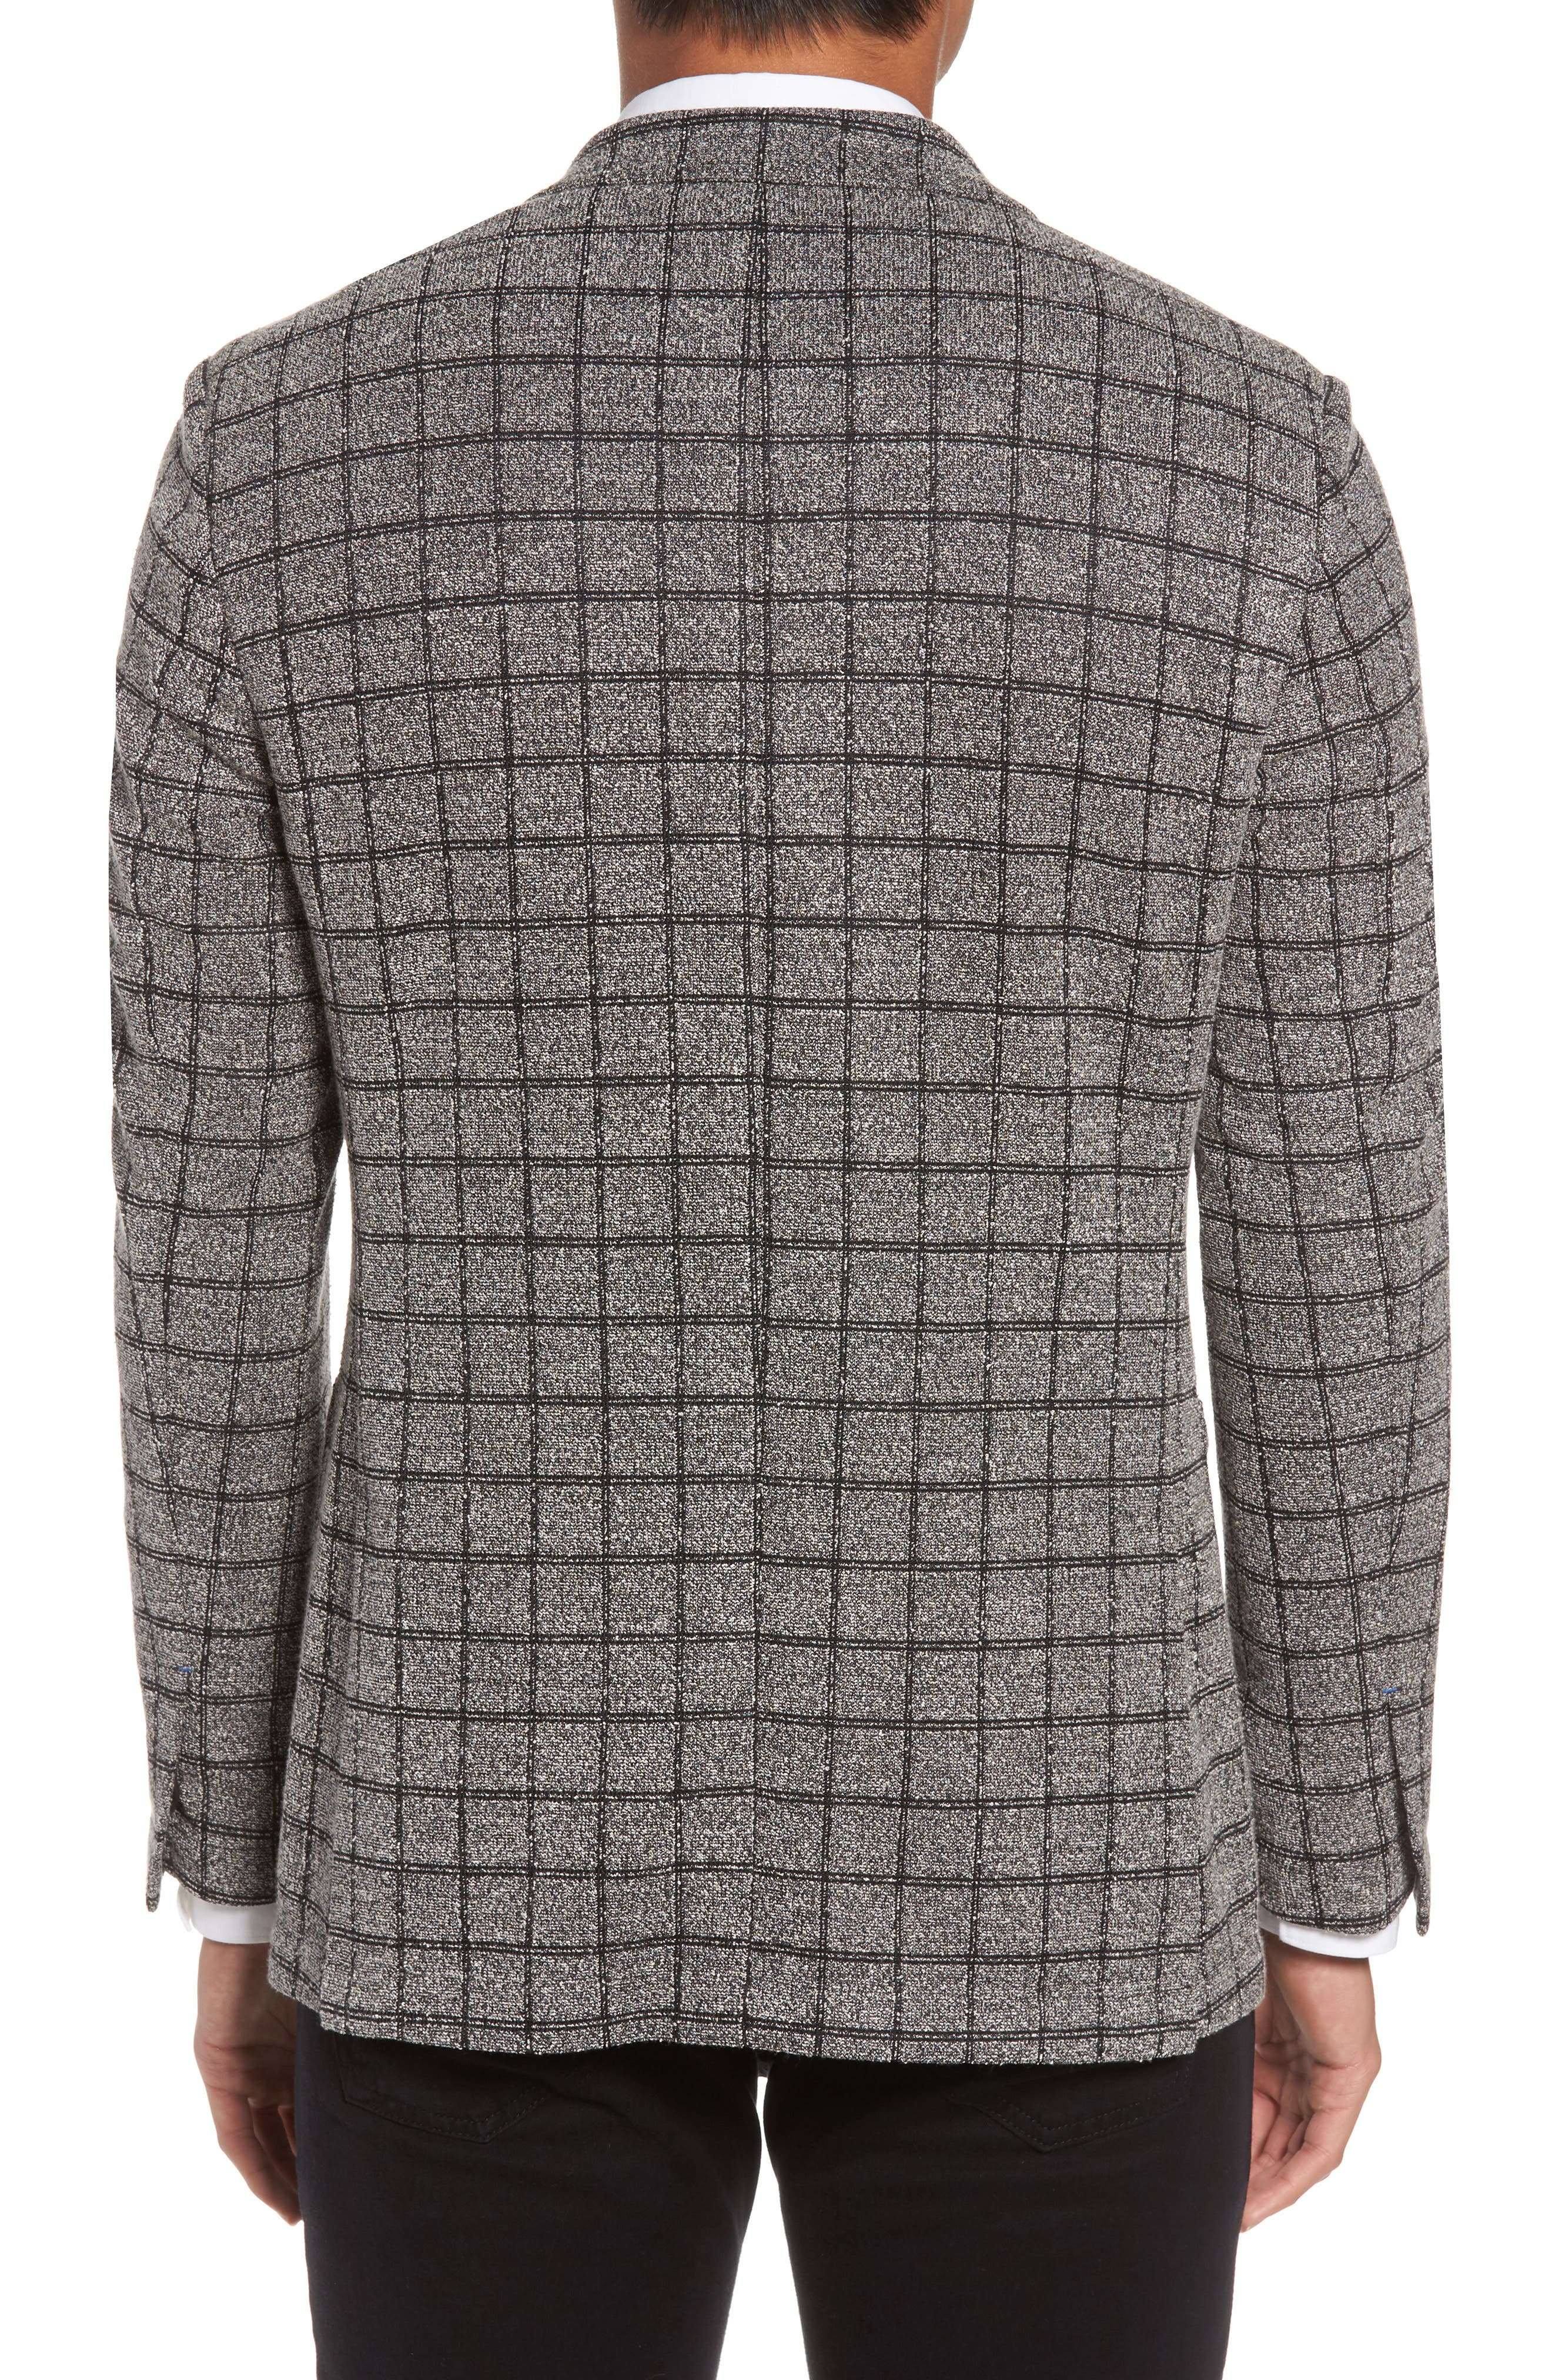 Del Aria Slim Fit Check Knit Jacket,                             Alternate thumbnail 2, color,                             Charcoal Windowpane Boucle